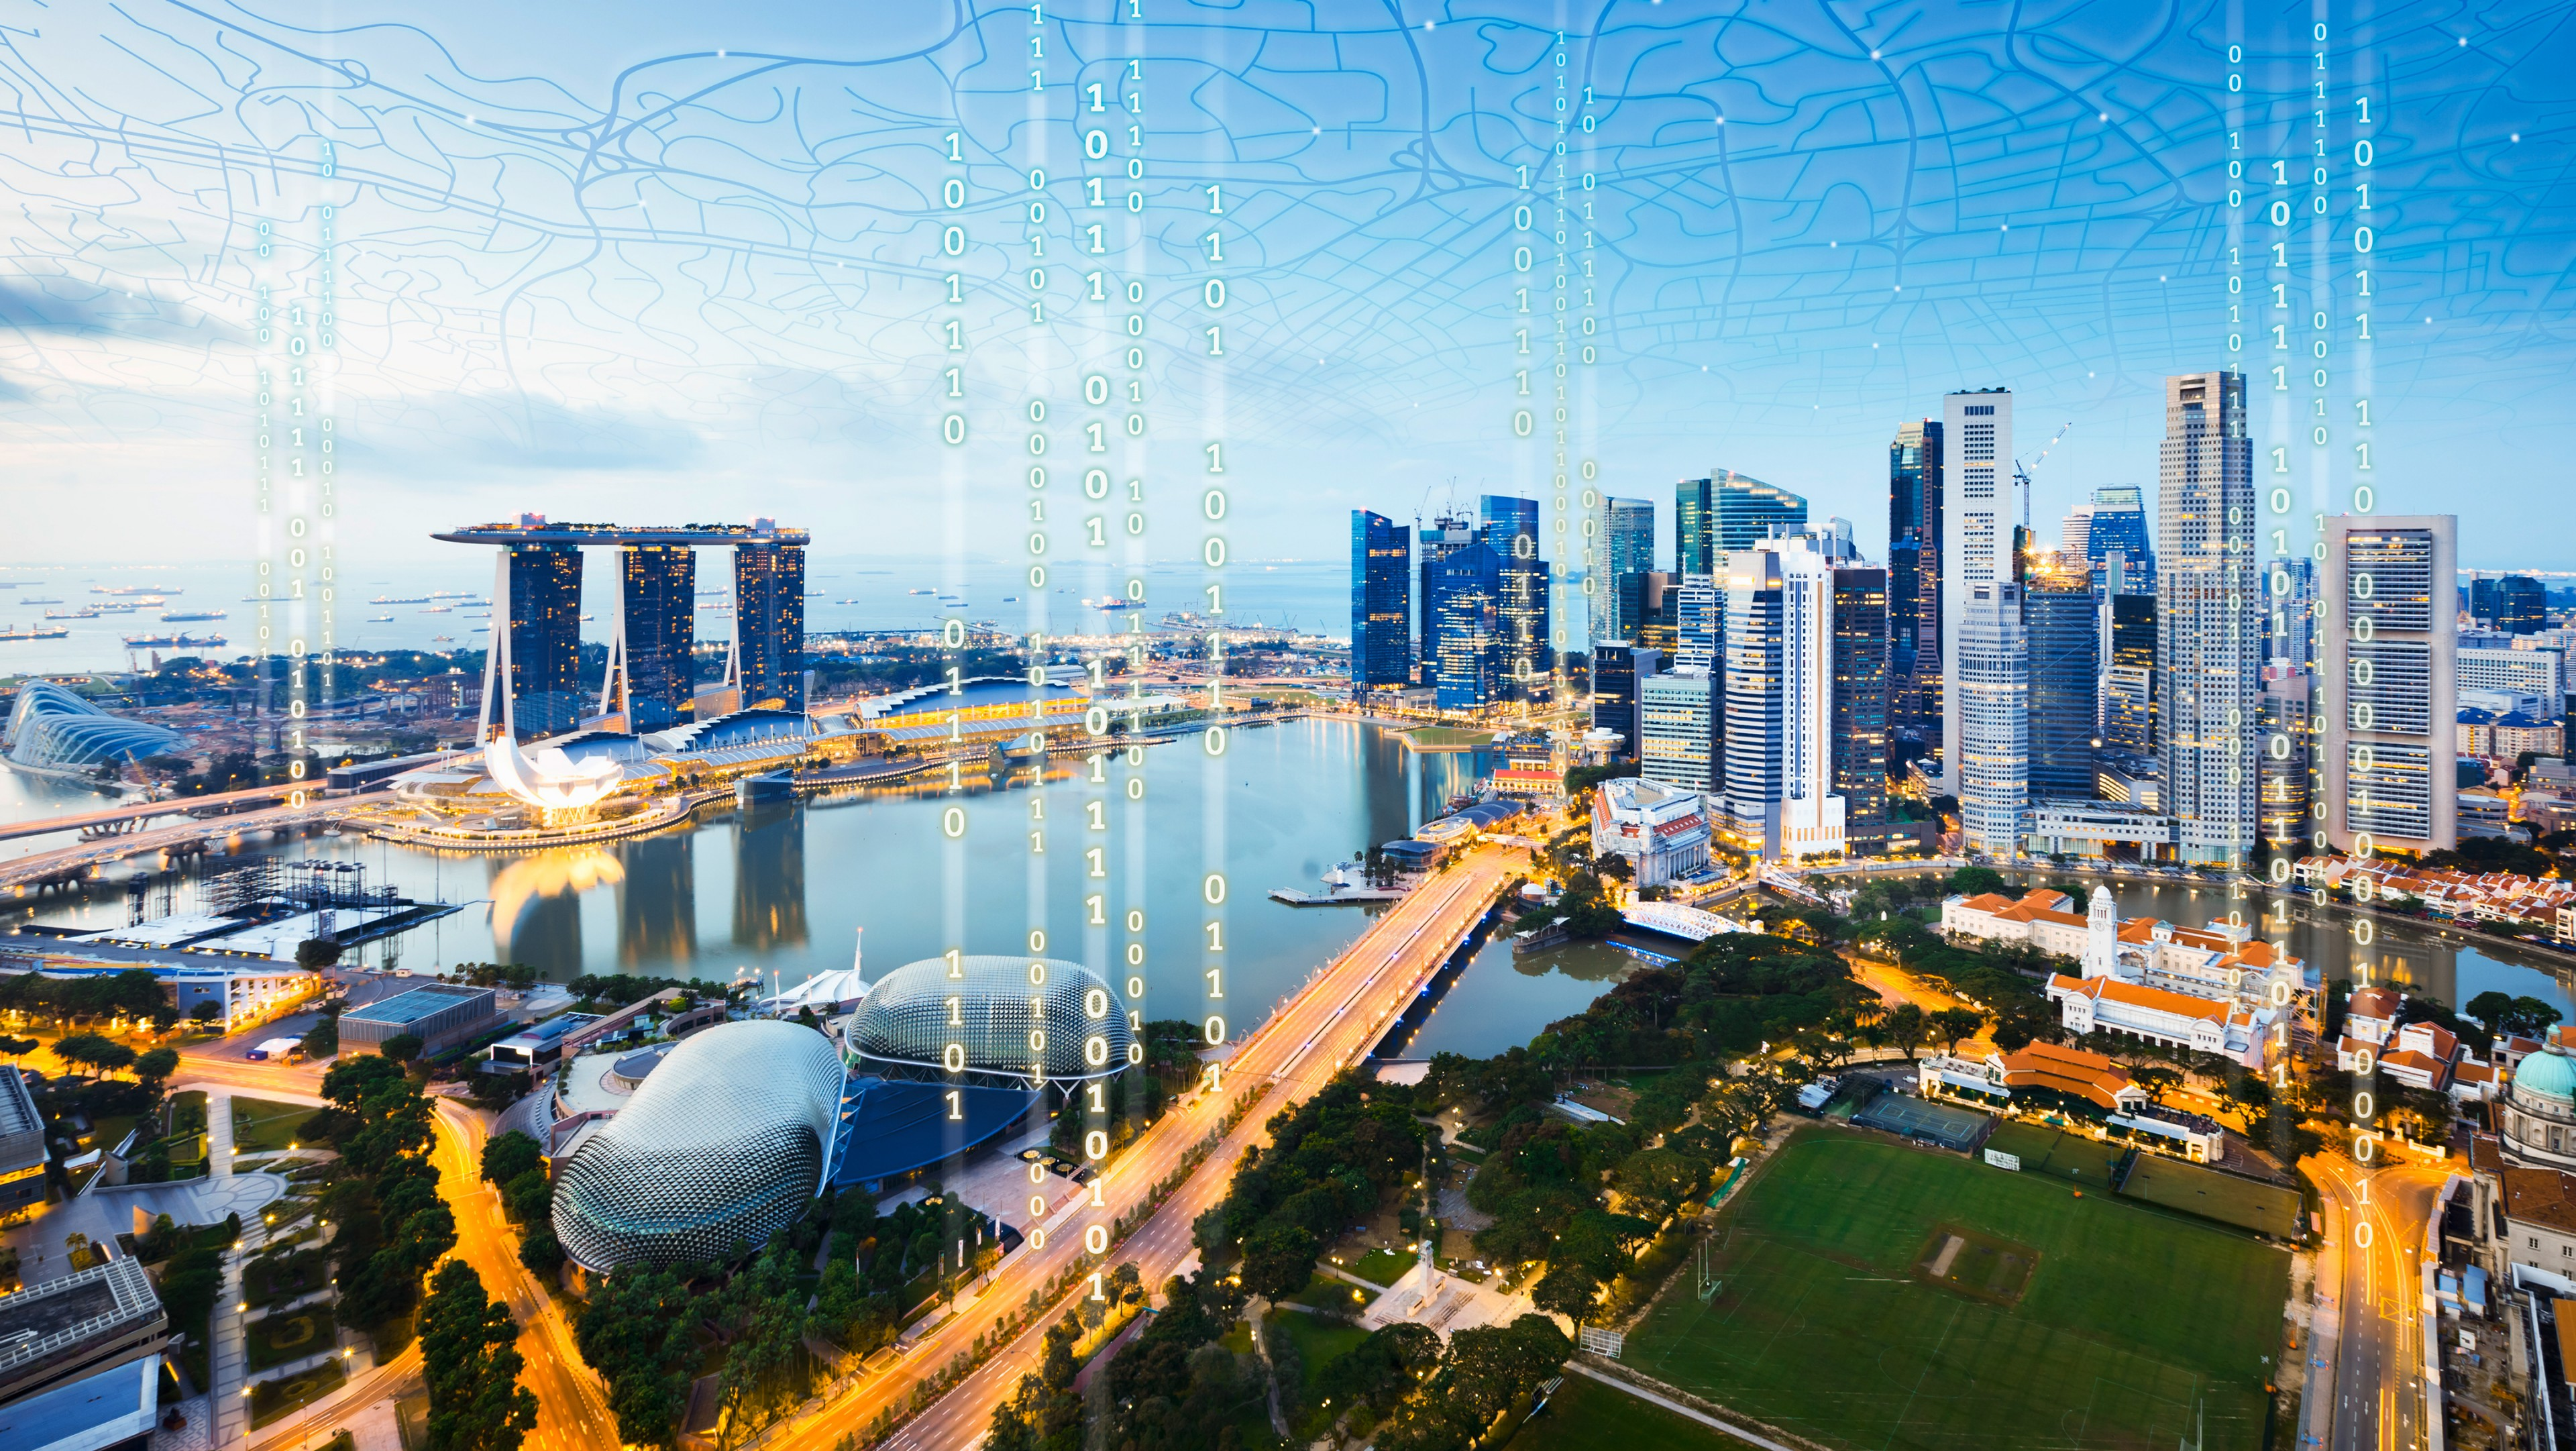 Siemens at ITS World Congress 2019 | Fairs and events | Siemens